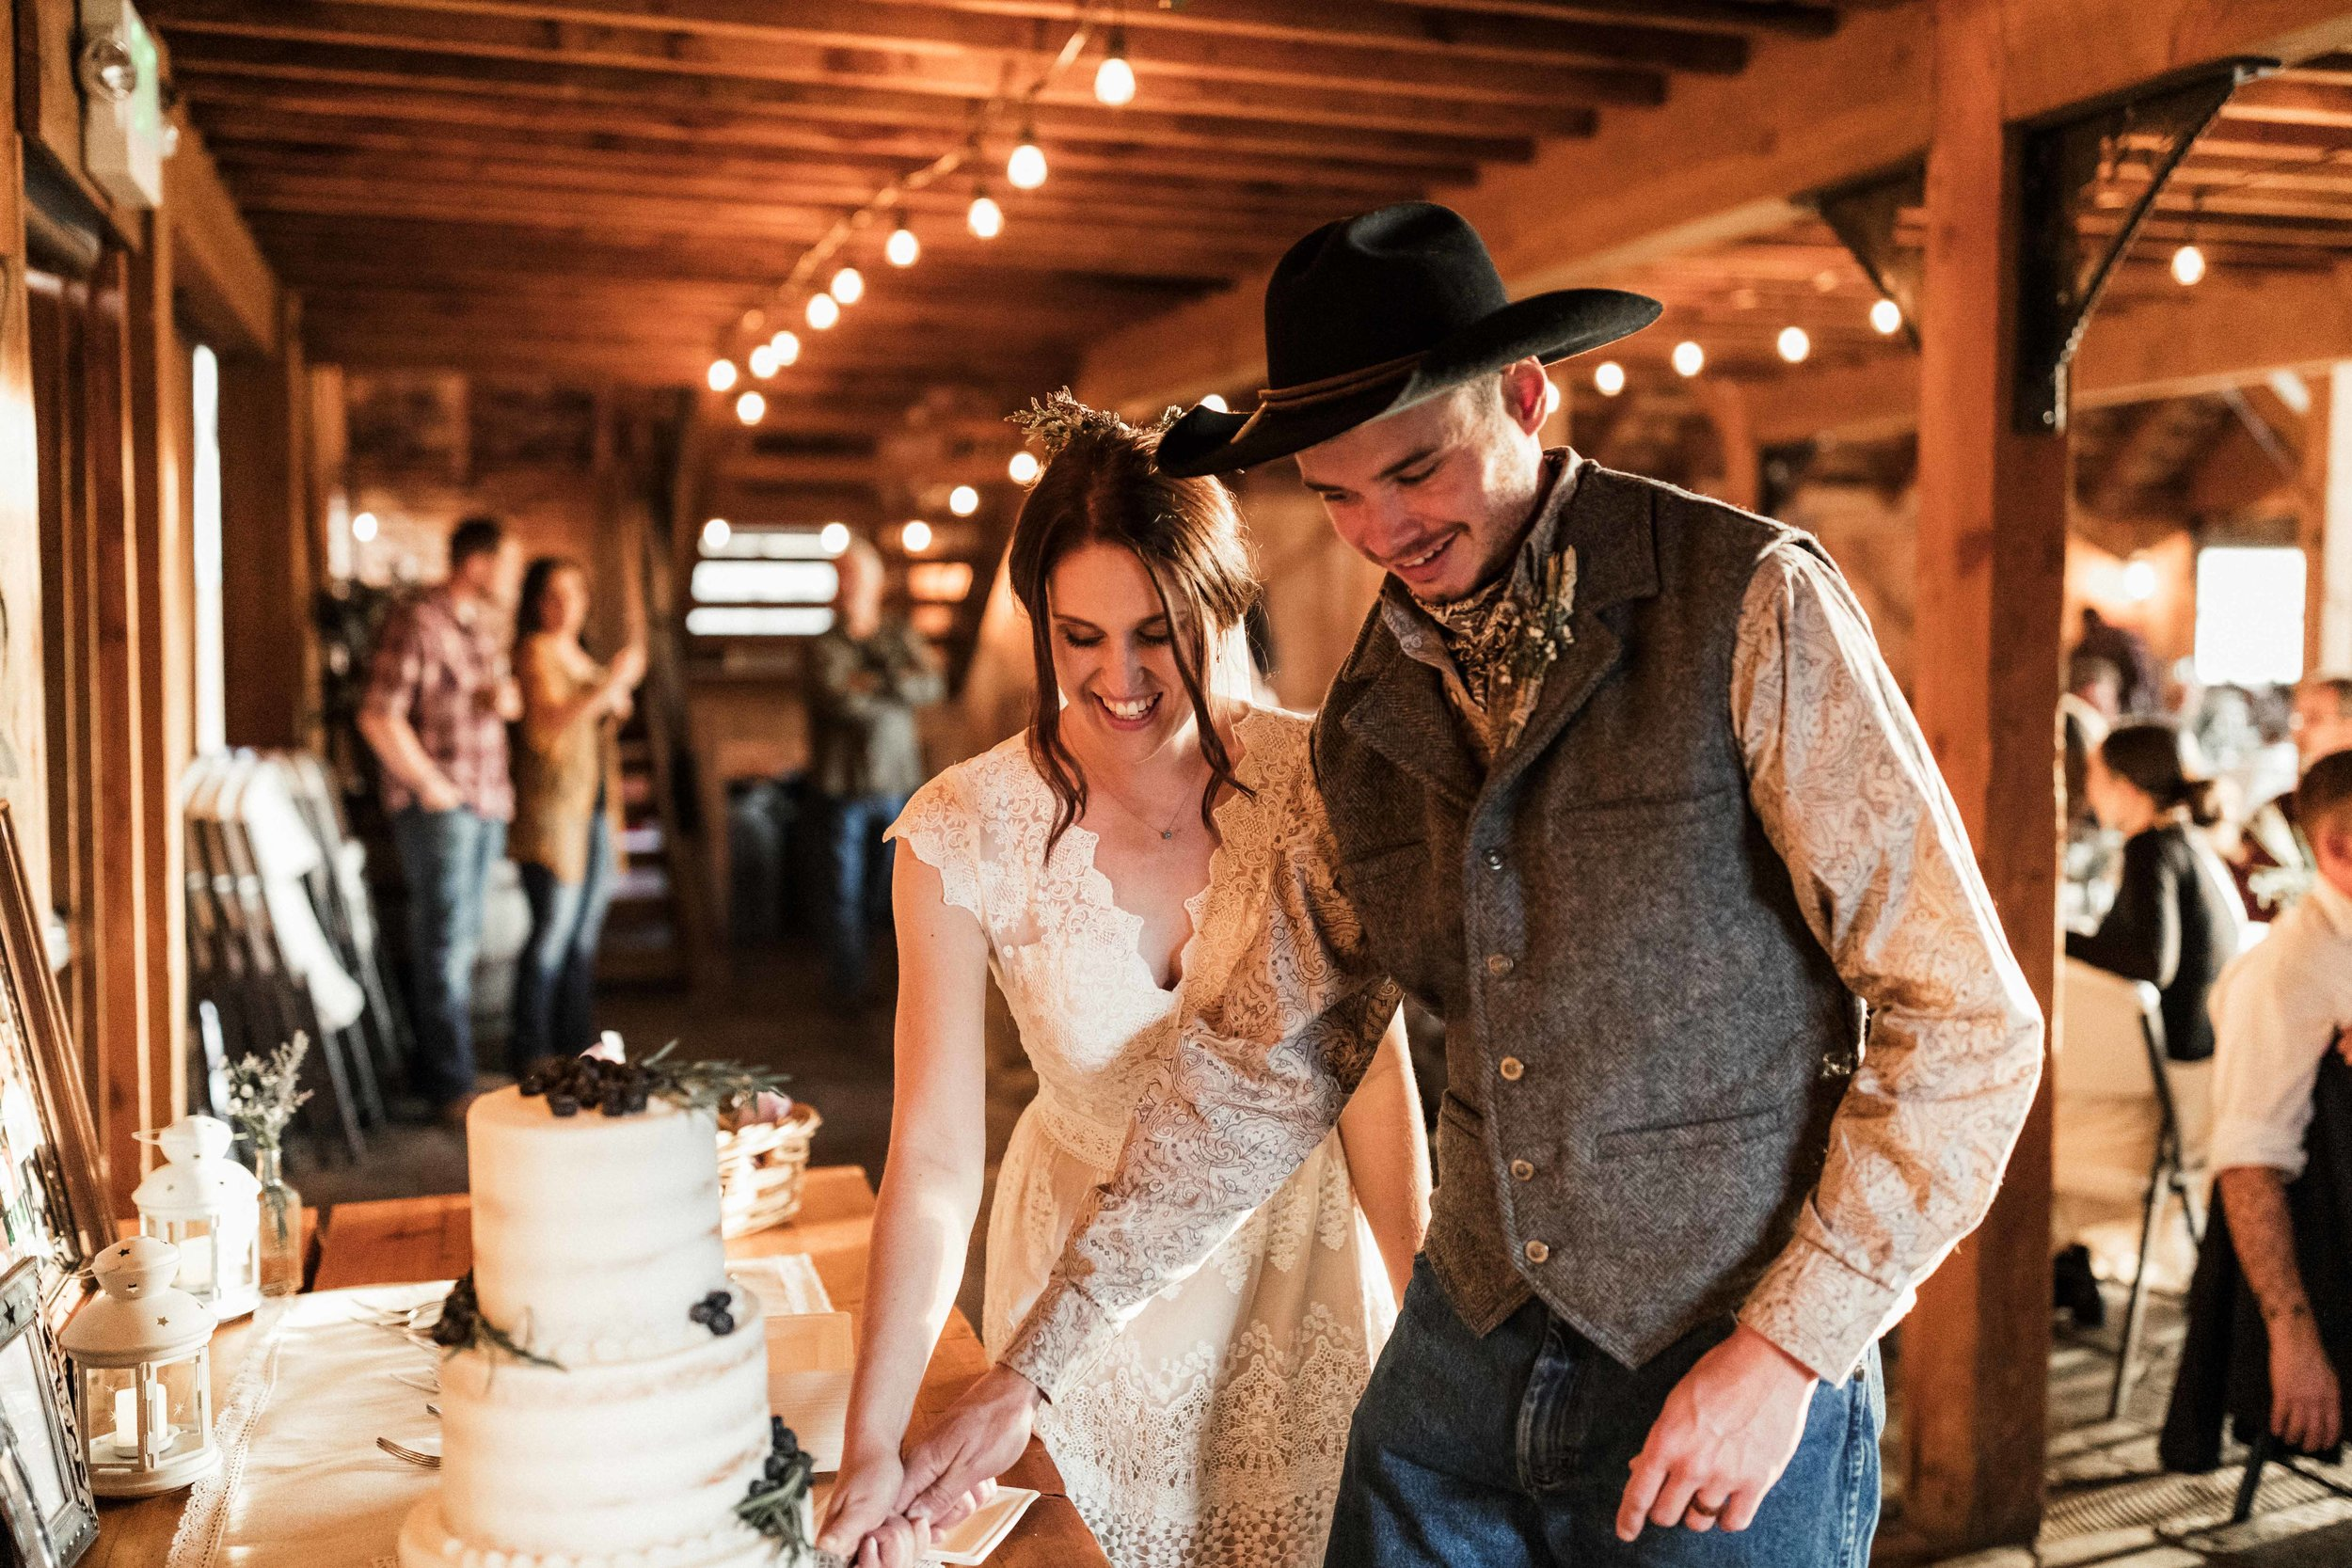 the-cattle-barn-wedding-81.jpg